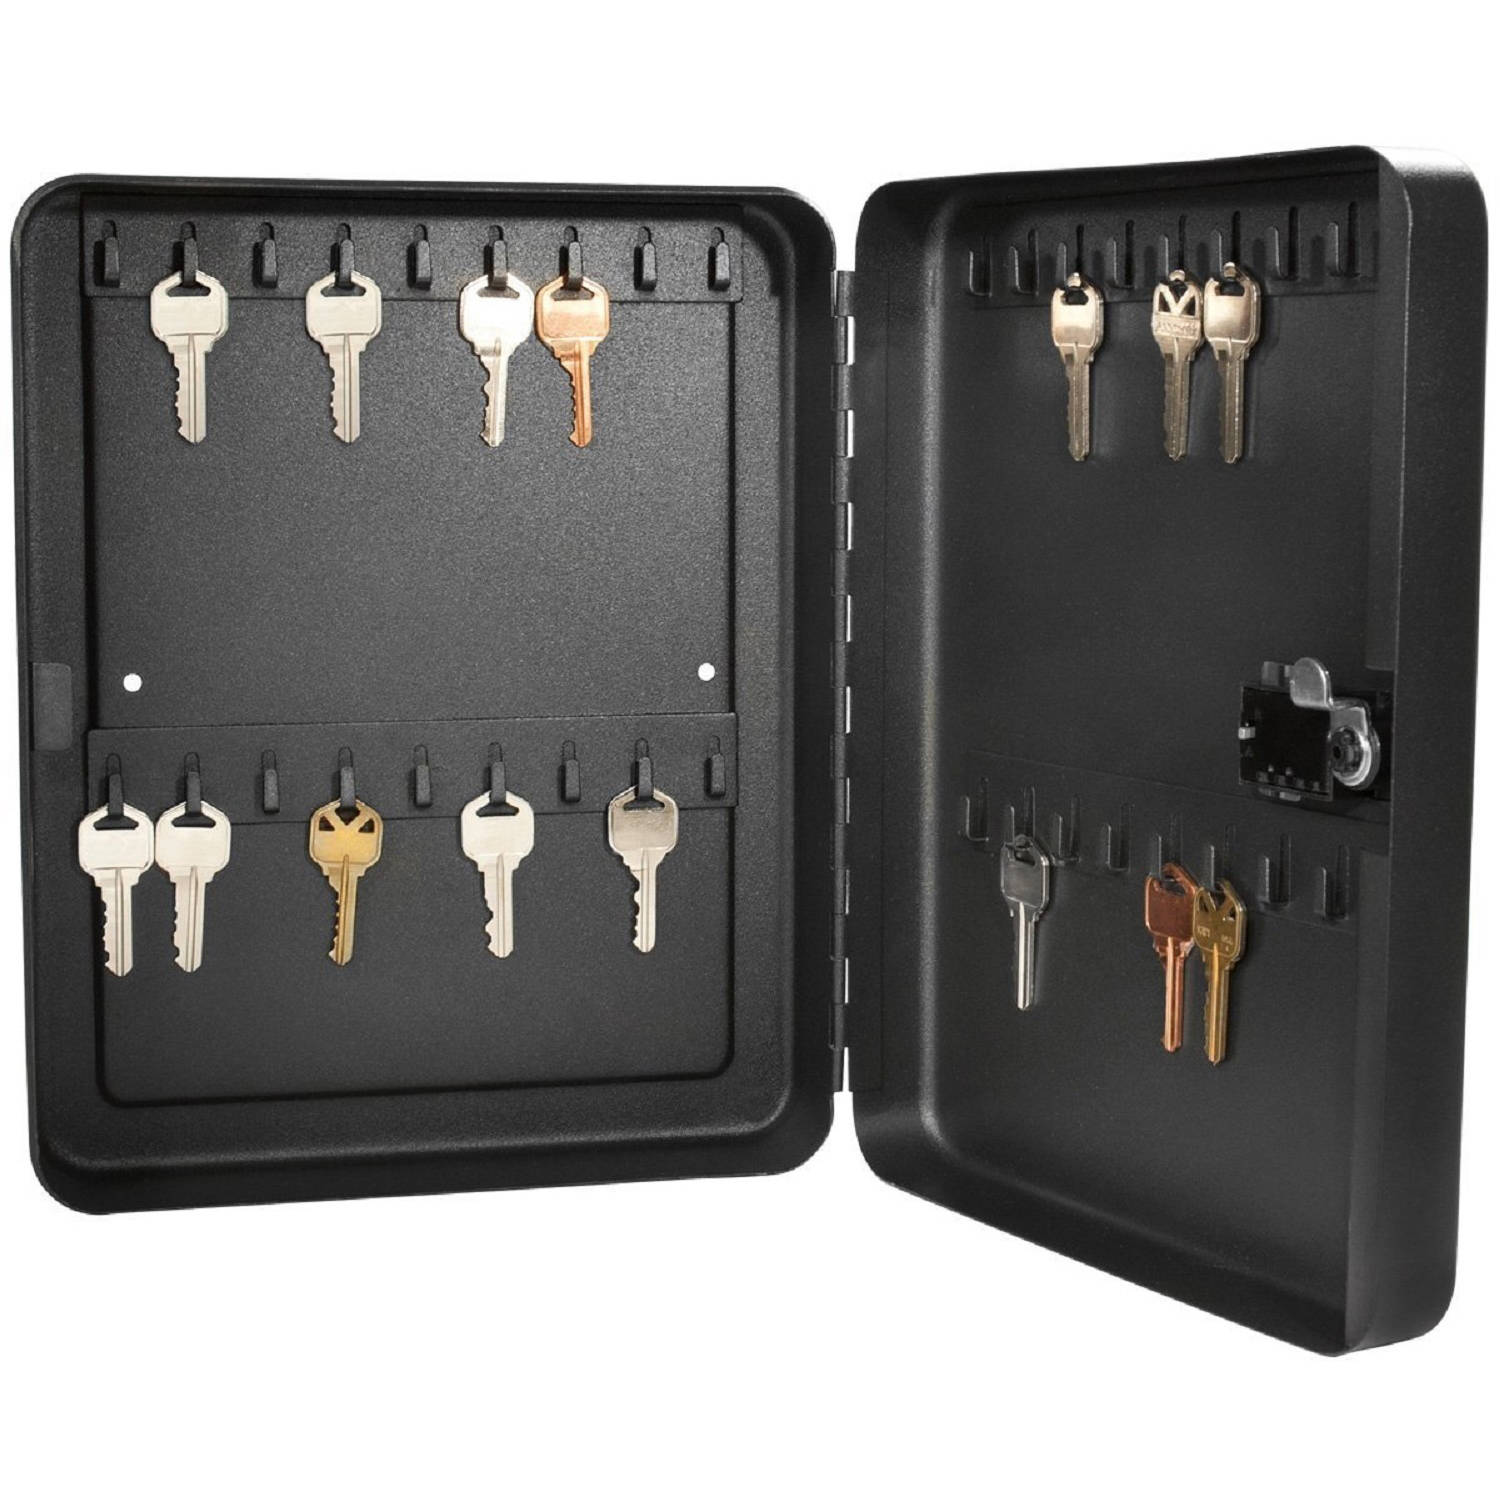 Barska 36 Position Key Lock Box with Combination Lock, Black